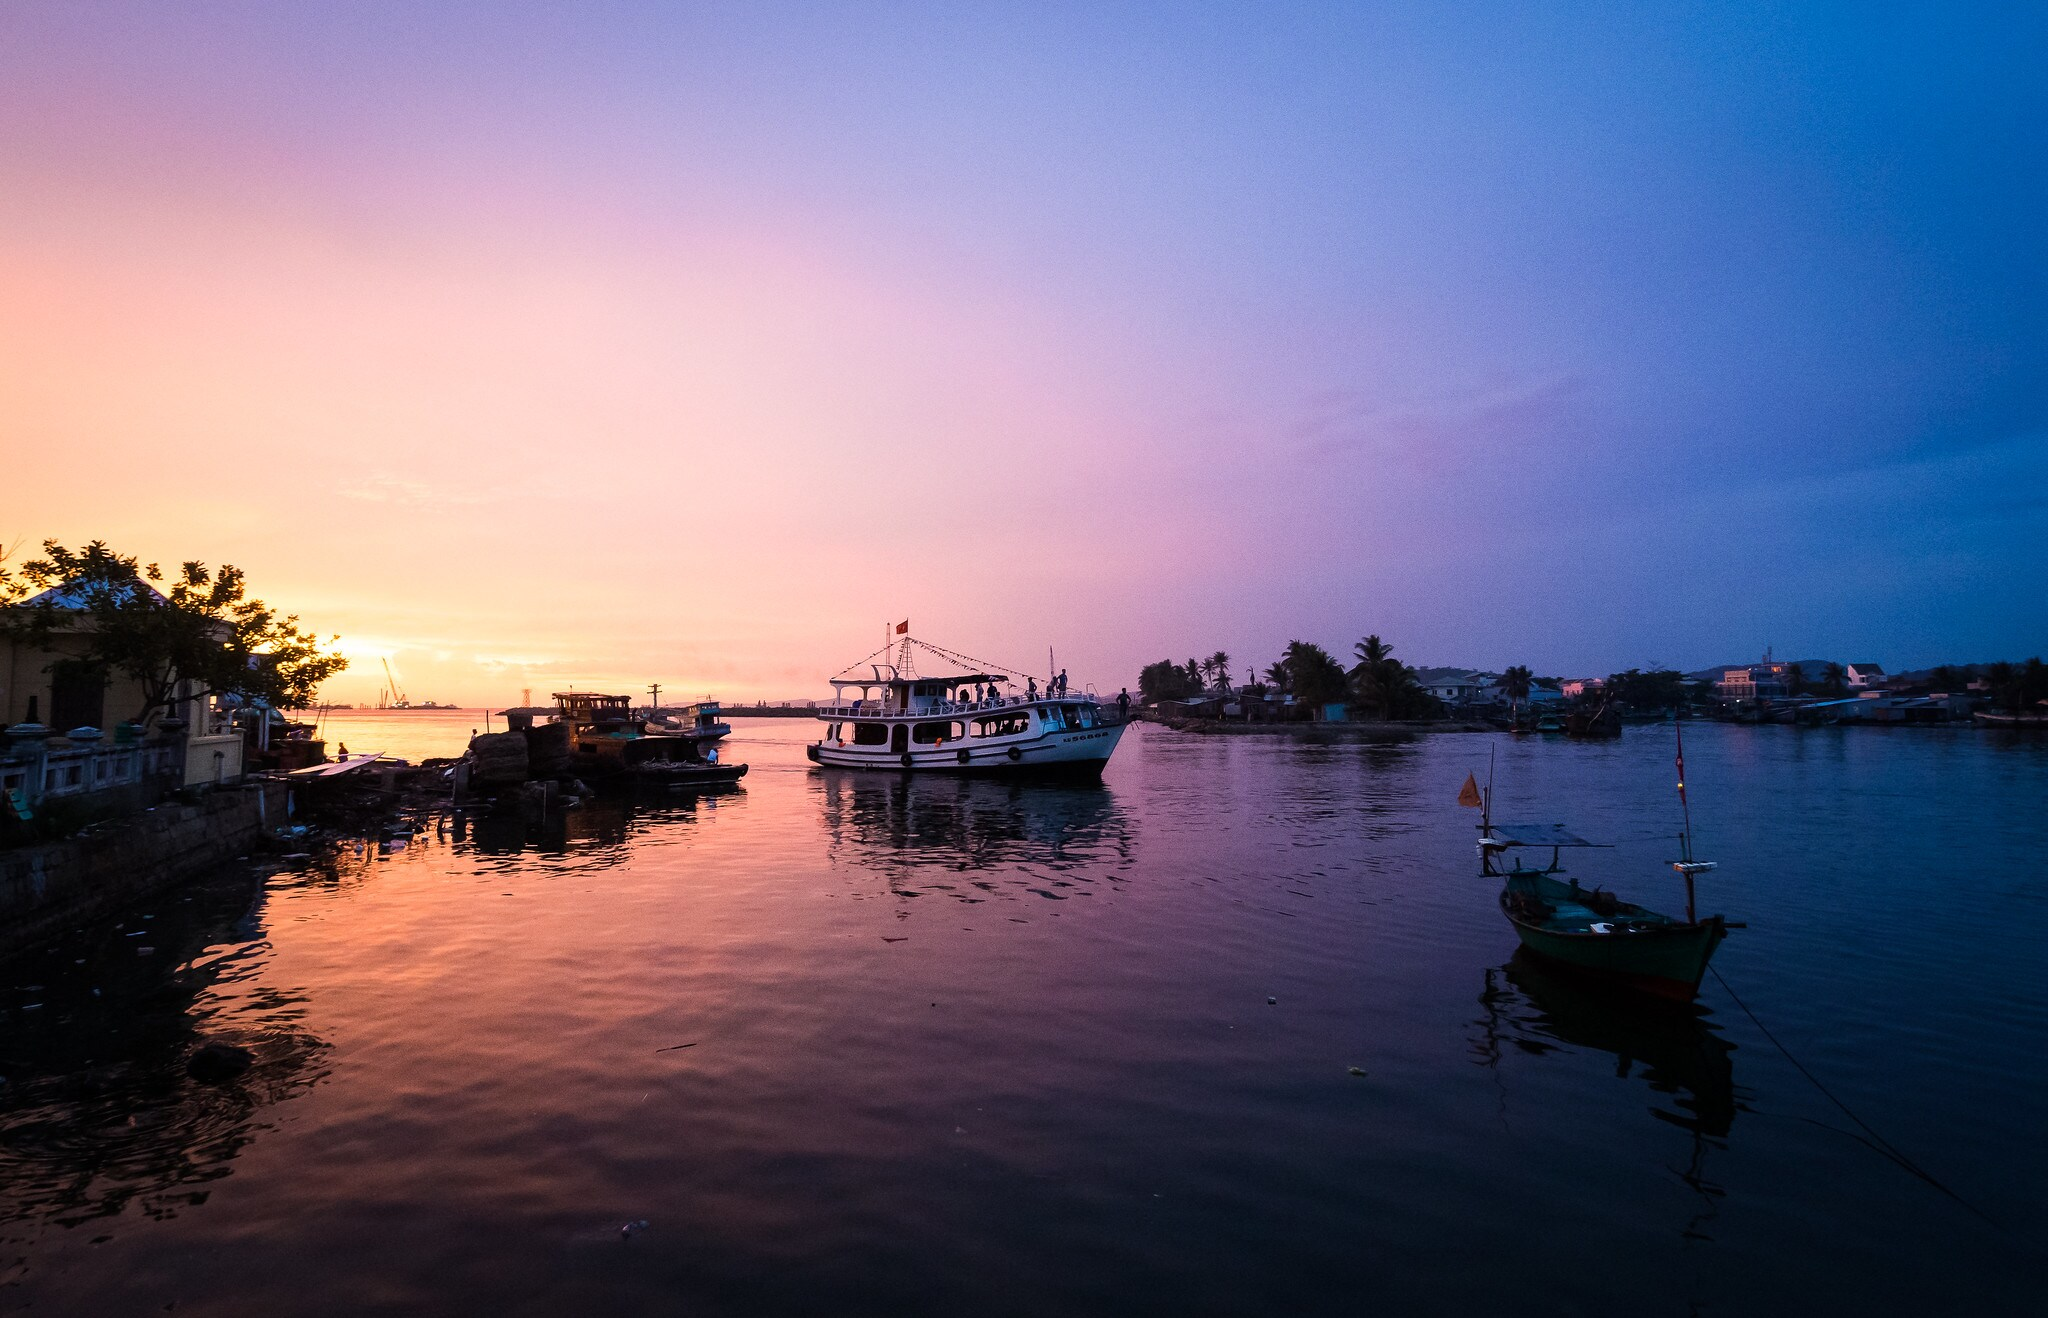 Sunset and night squid fishing in Phu Quoc